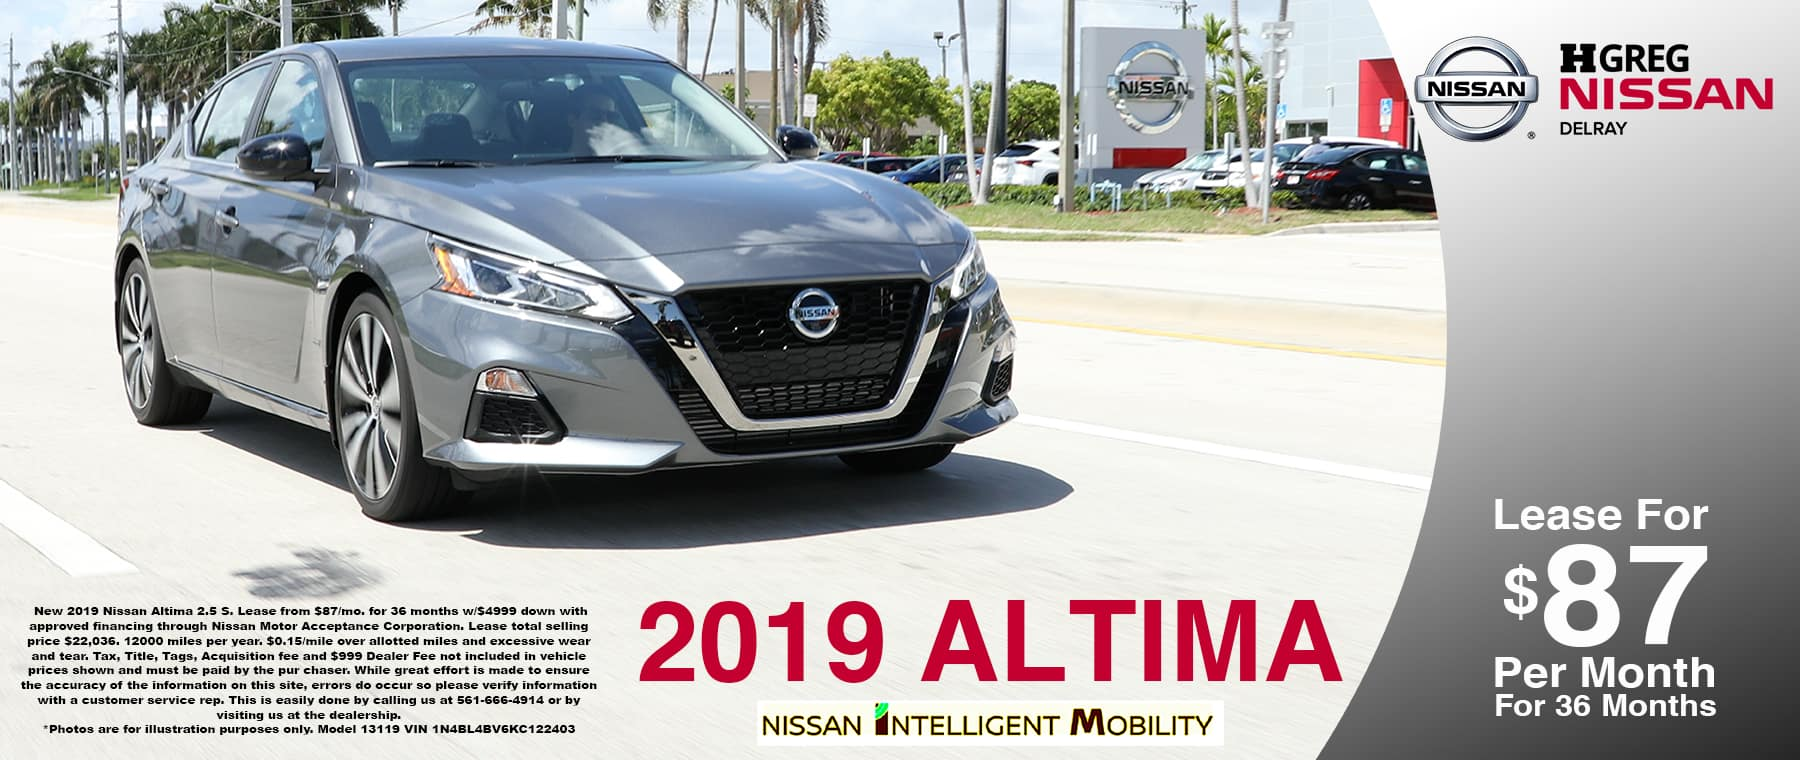 New And Used Nissan Vehicles For Sale Delray FL | HGreg